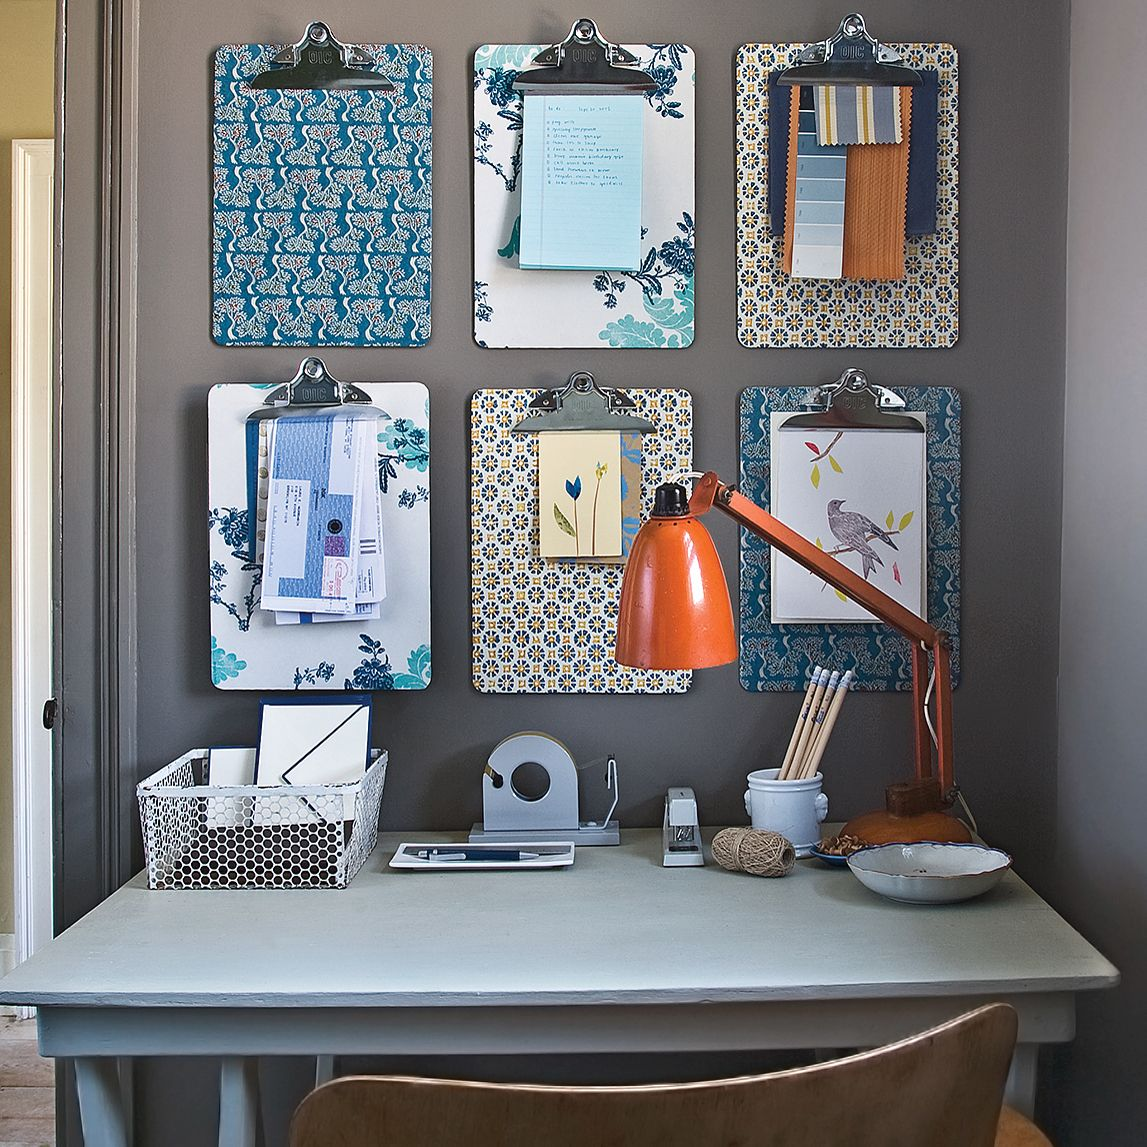 office desk decoration ideas hd wallpaper. Keep Your Desk Tidy By Decorating Walls With Pretty Clipboards. Clip All Those Loose Papers Out Of Way Instead Leaving Them To Clutter Office Decoration Ideas Hd Wallpaper